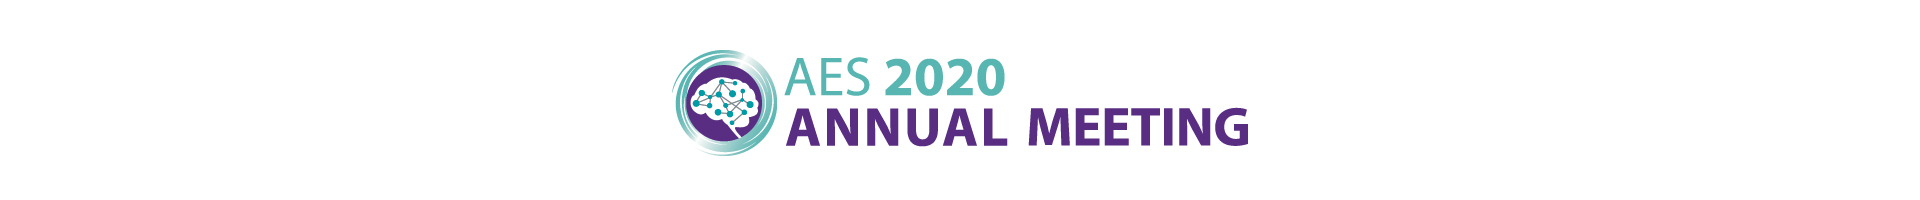 2020 Annual Meeting Event Banner